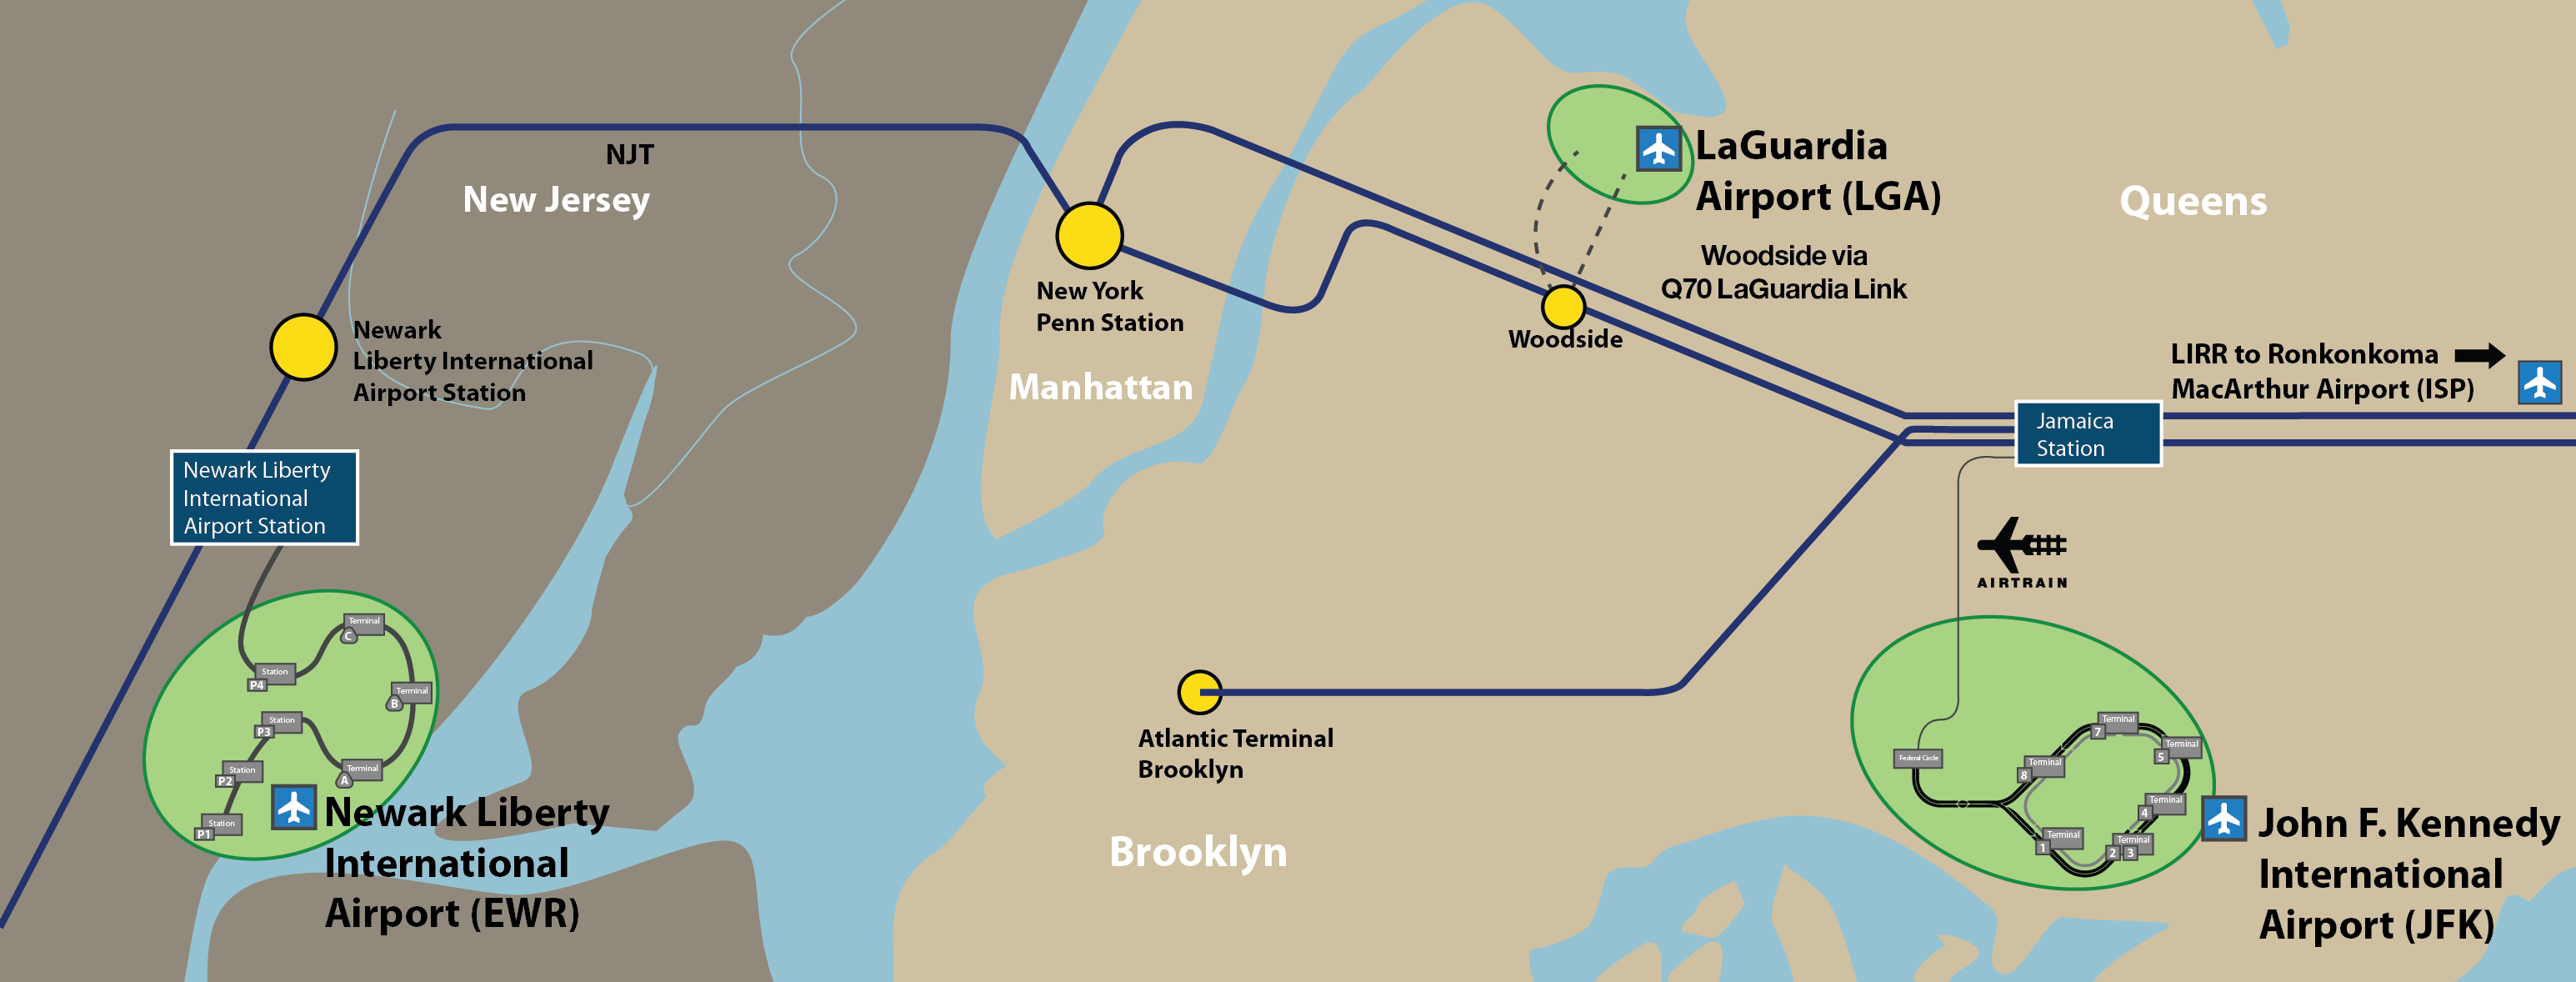 Newark Airport Airtrain Map Take The Train to the Plane at JFK, LGA, ISP, EWR